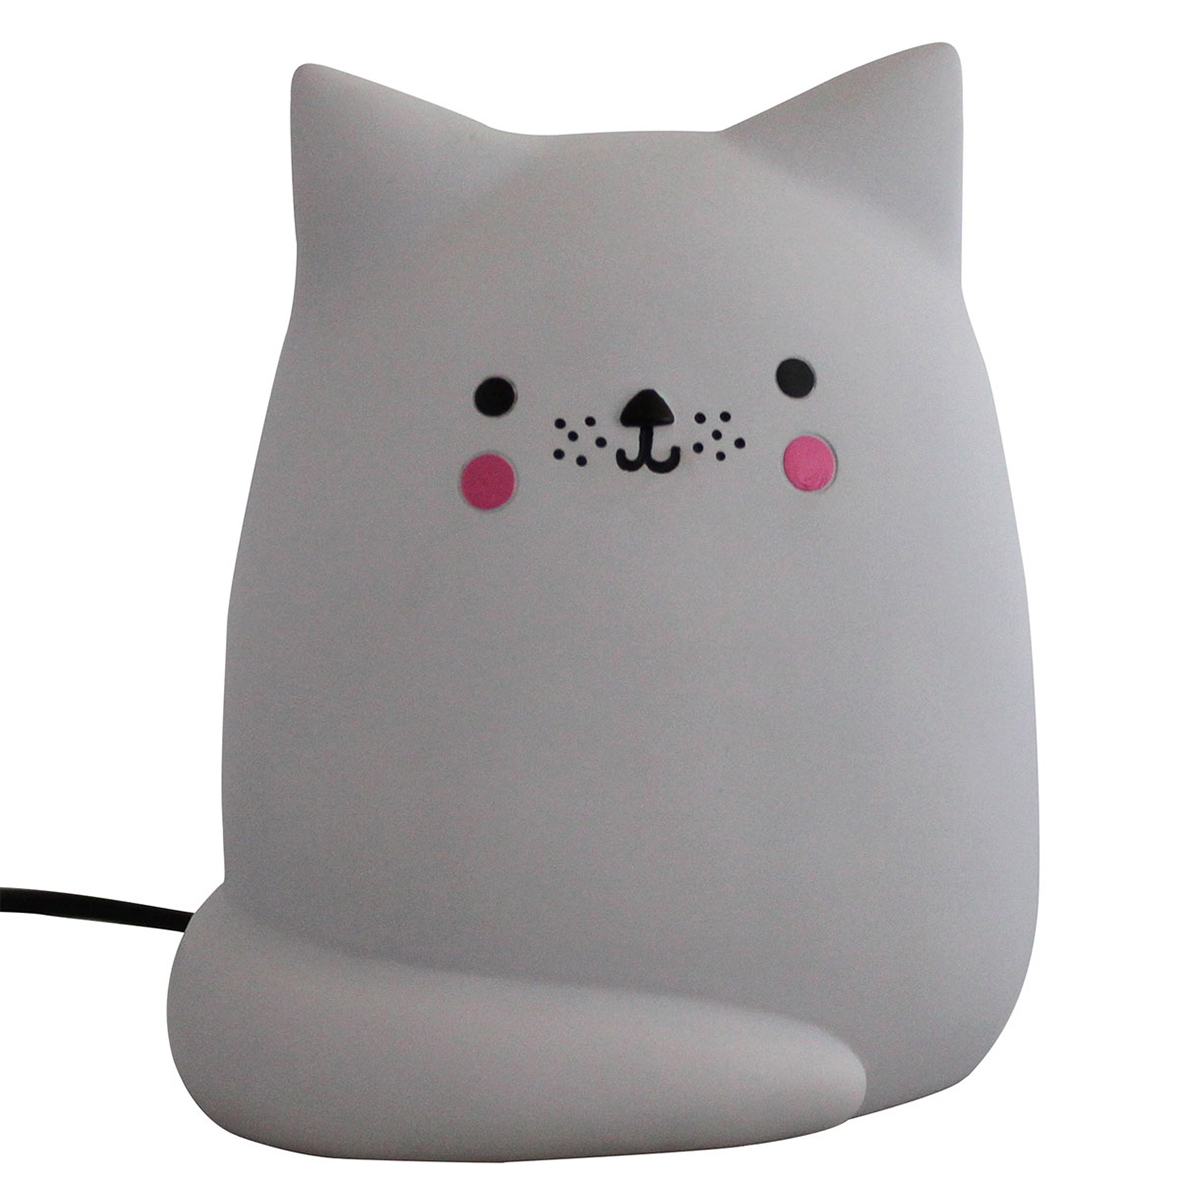 Lampe à poser Lampe Chat Lampe Chat